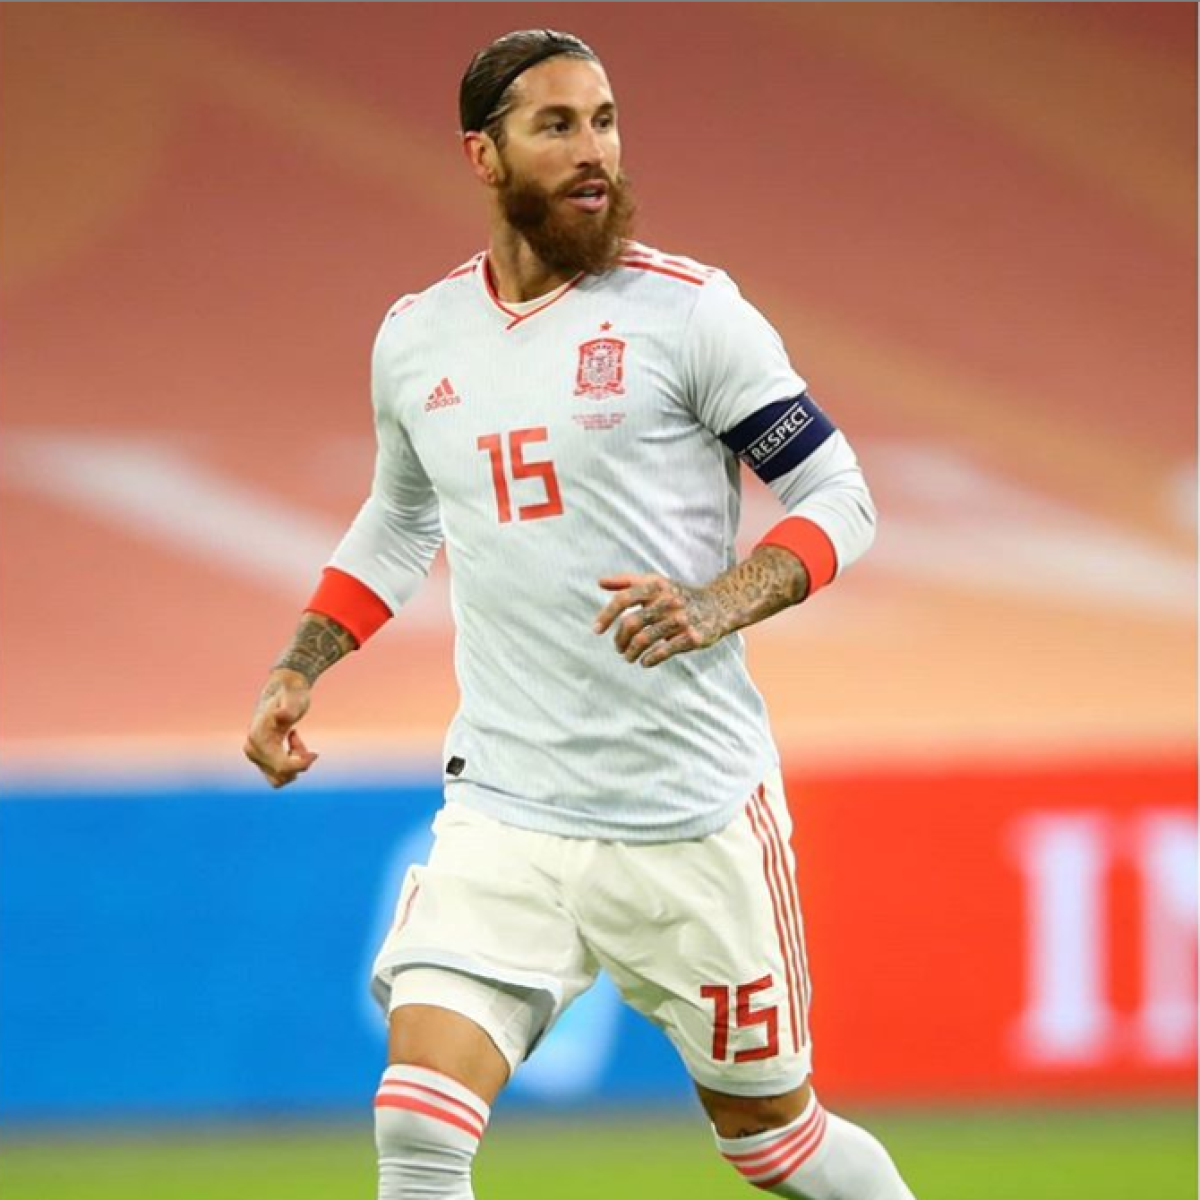 Despite missing two spot-kicks in single game, Sergio Ramos to continue taking penalties for Spain